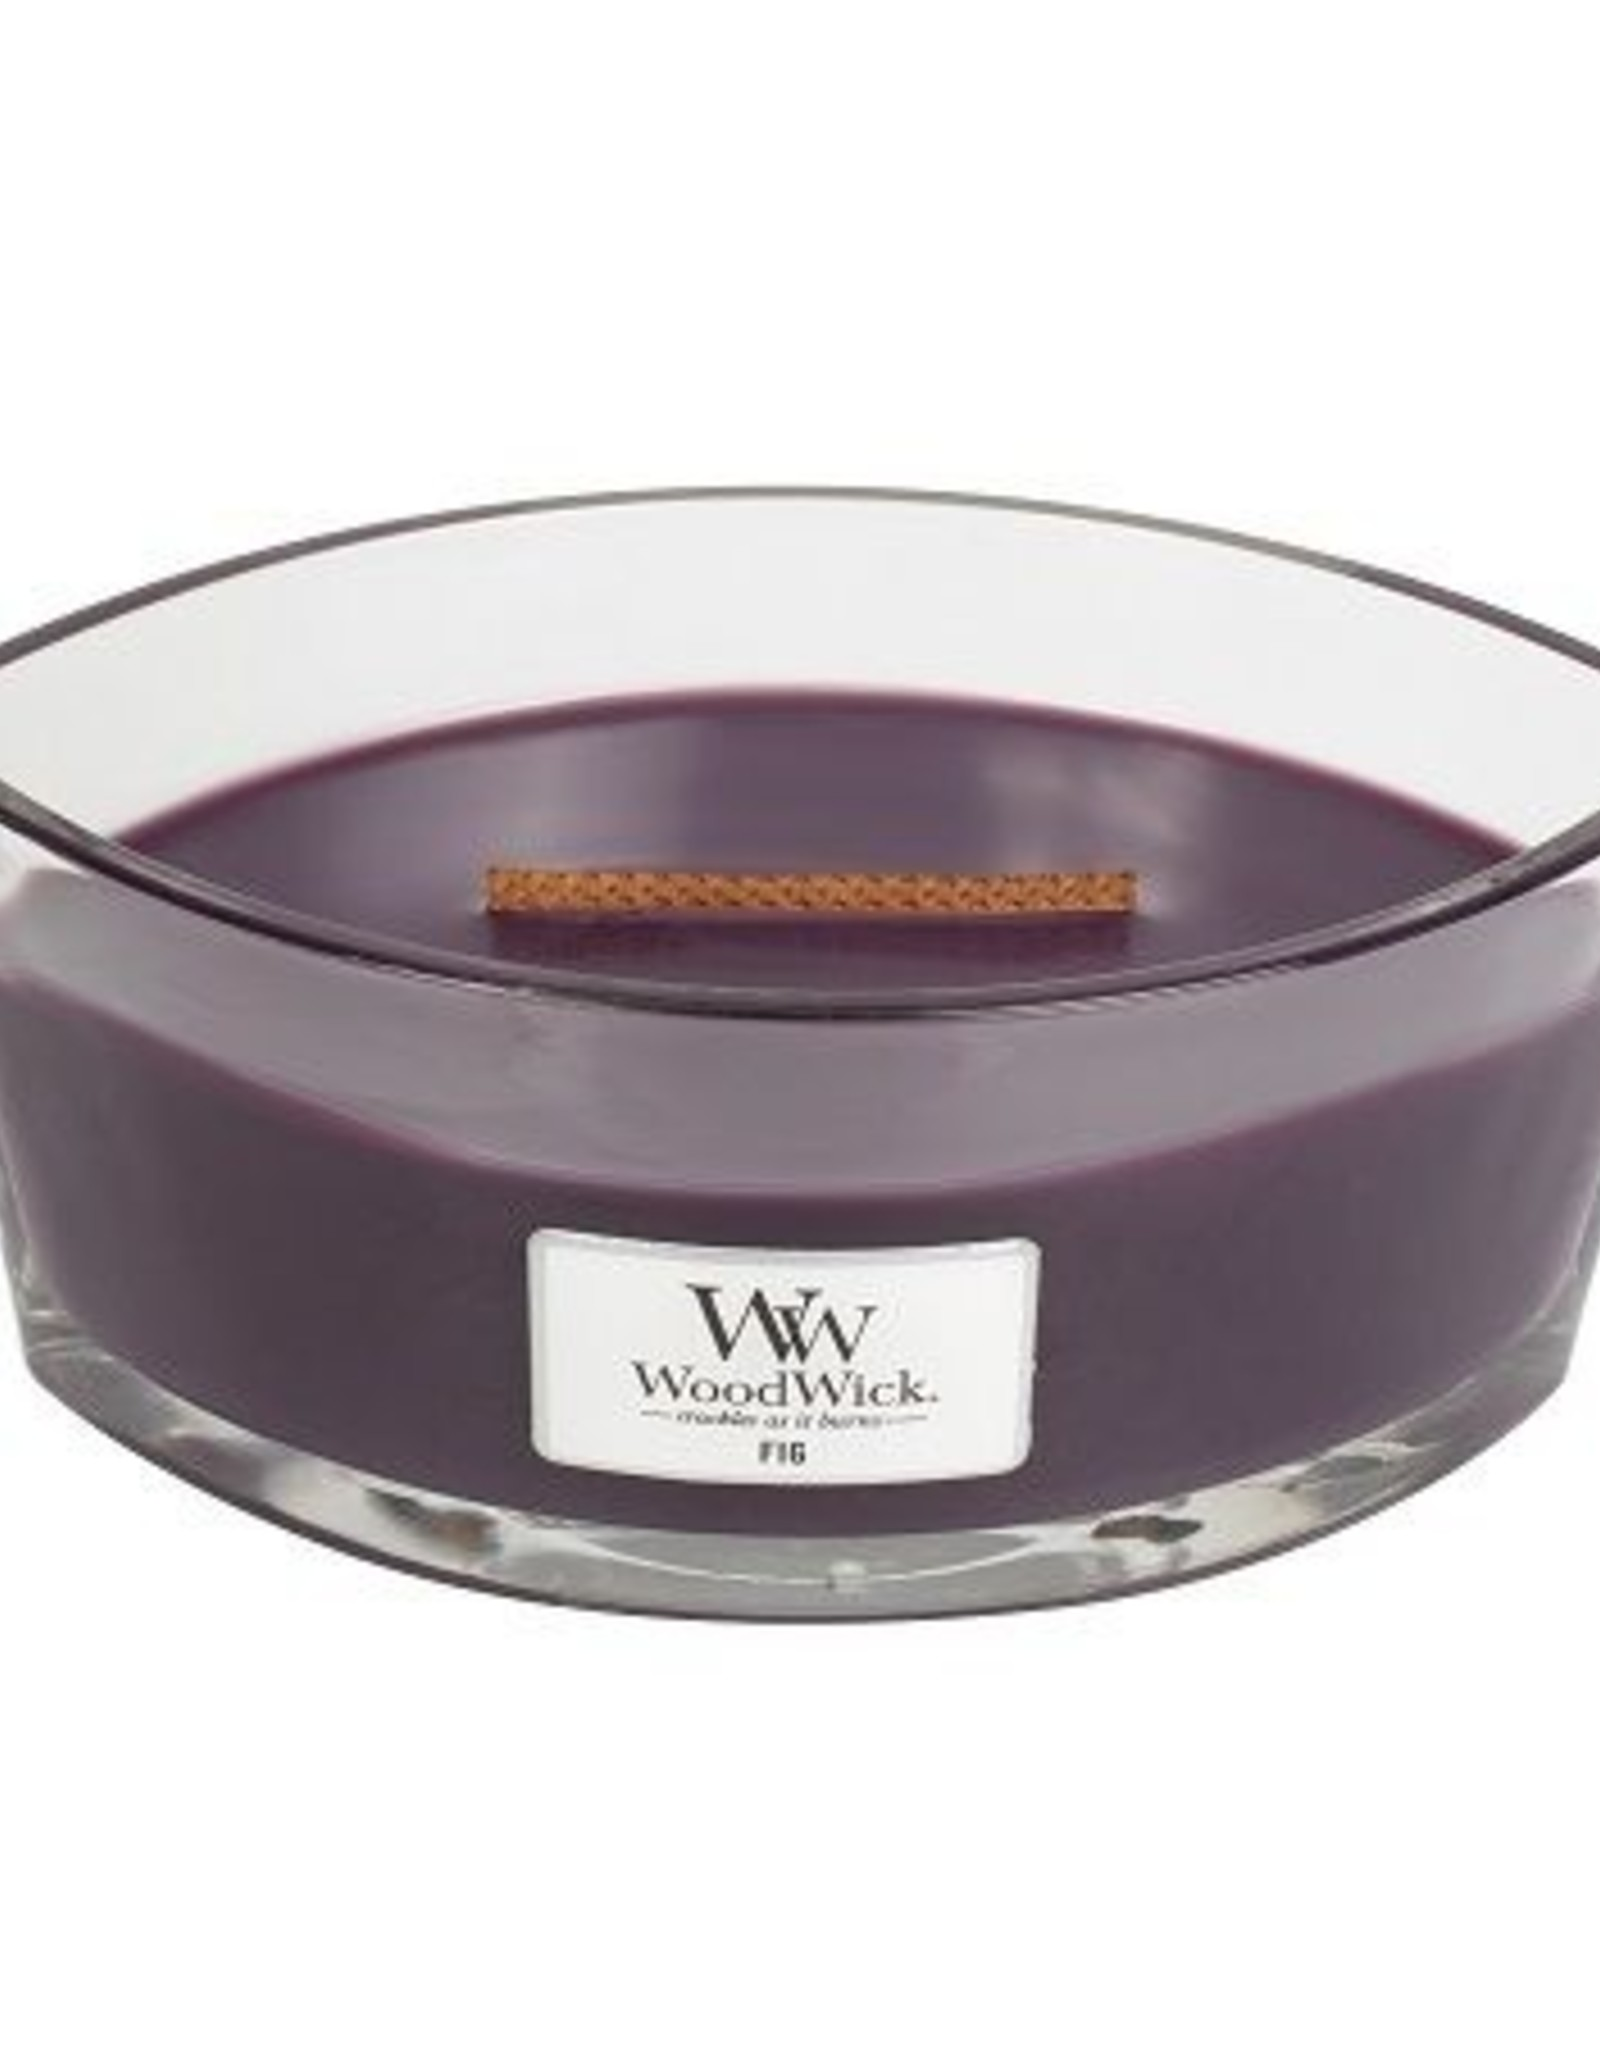 Woodwick Woodwick Fig Ellipse Candle